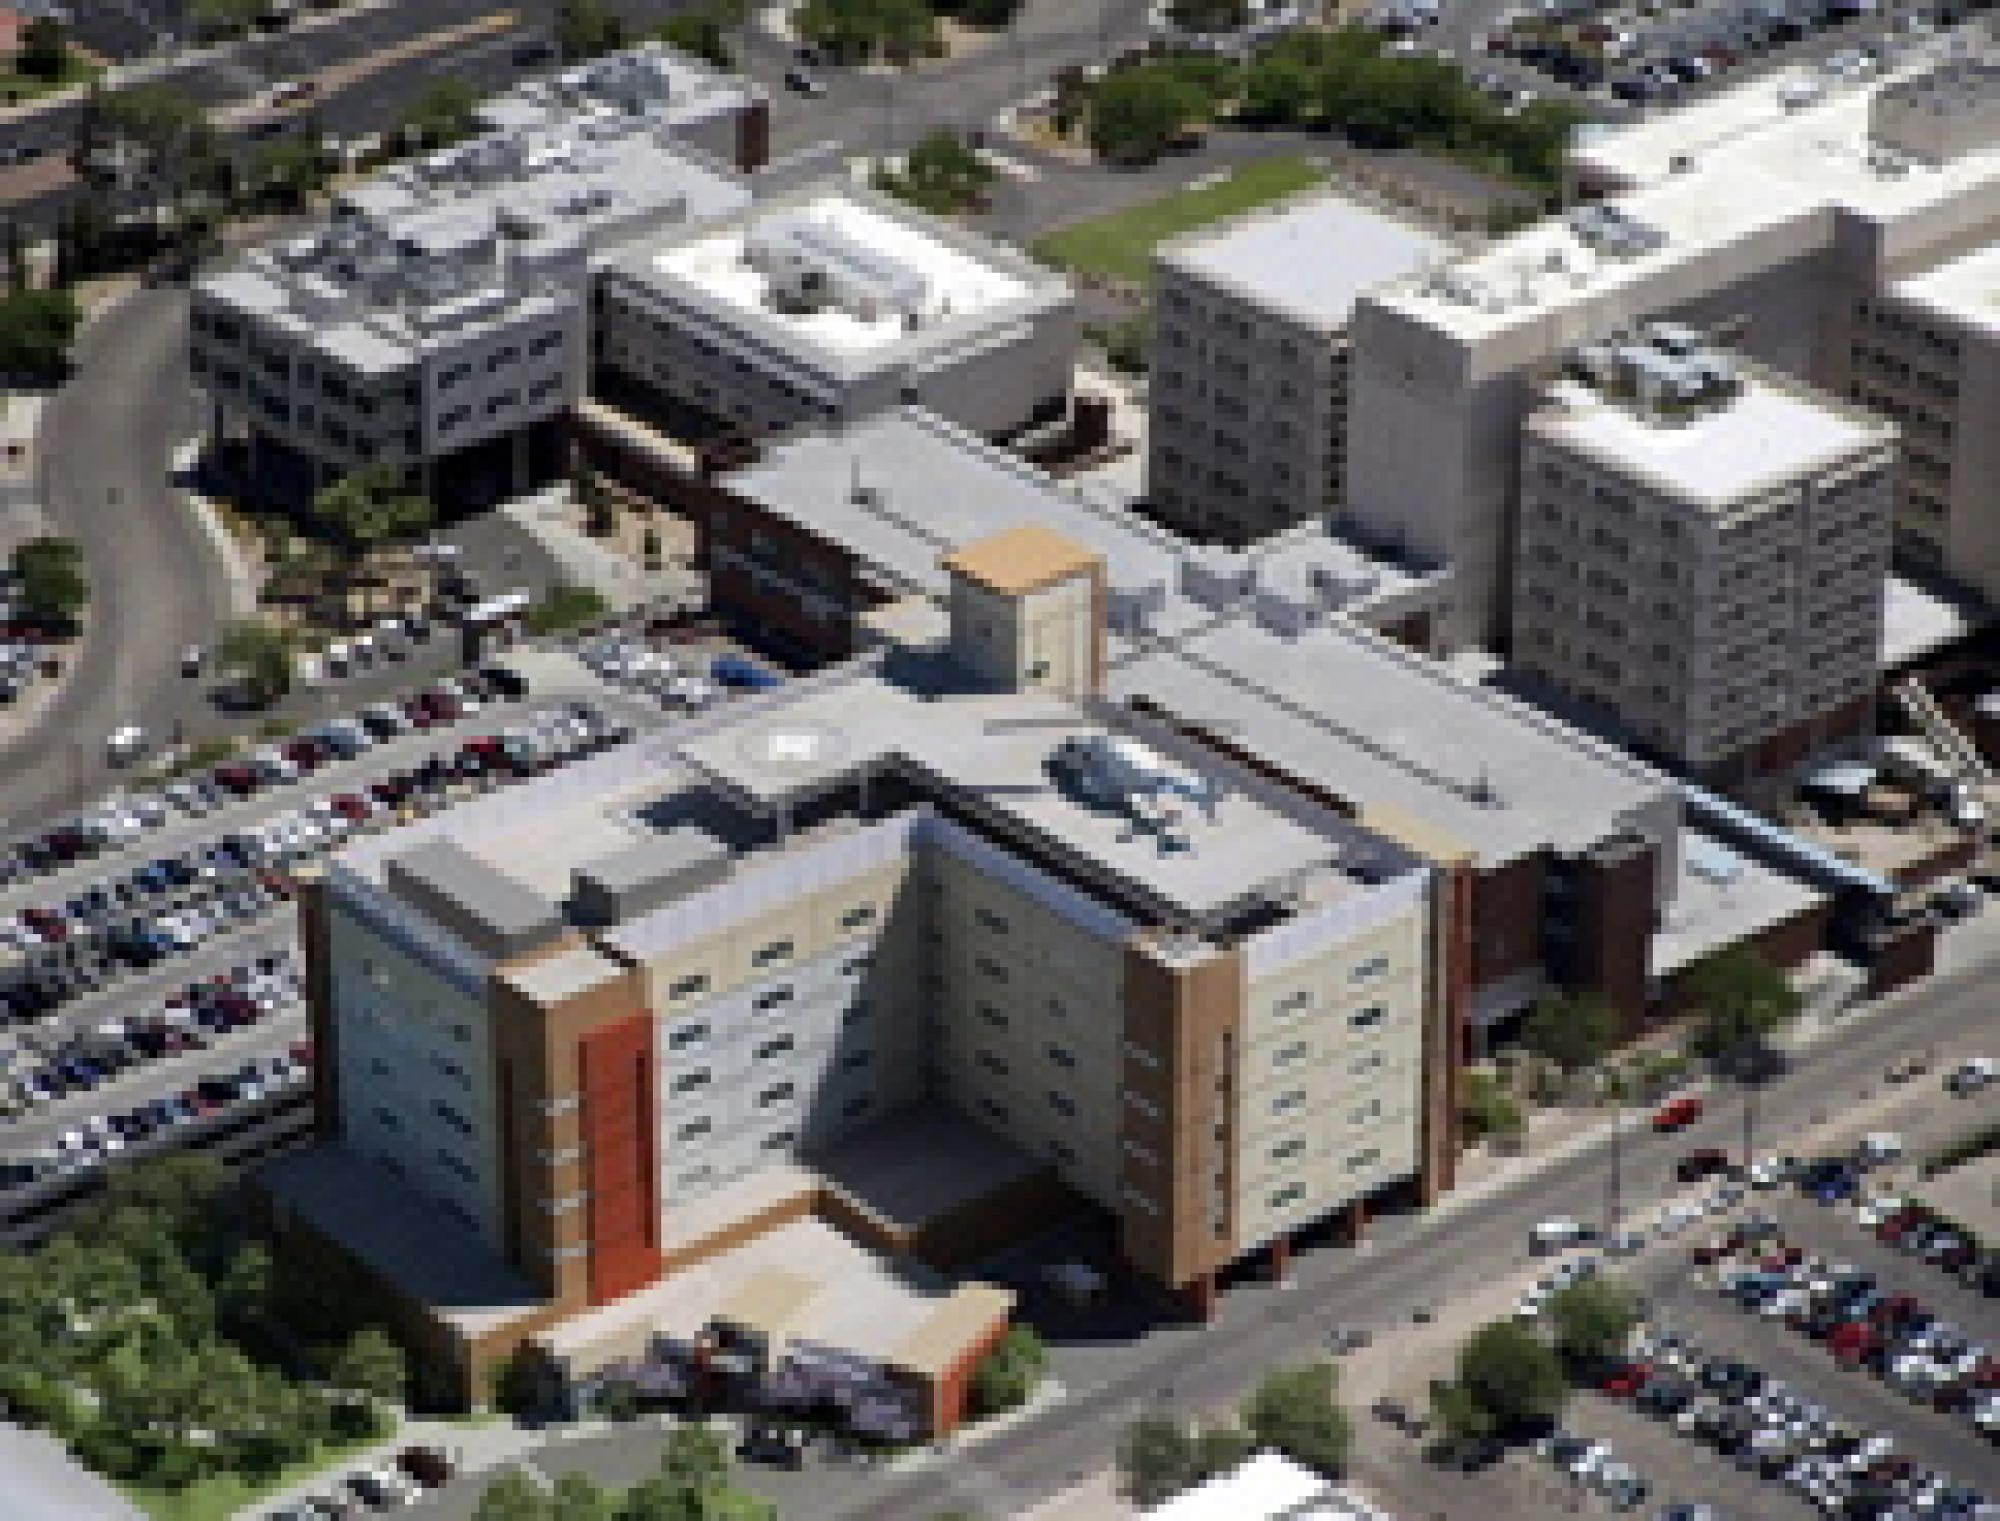 The new UMC emergency department and trauma center occupy the ground floor of a new tower that will house the Diamond Children's Medical Center on the top three floors.